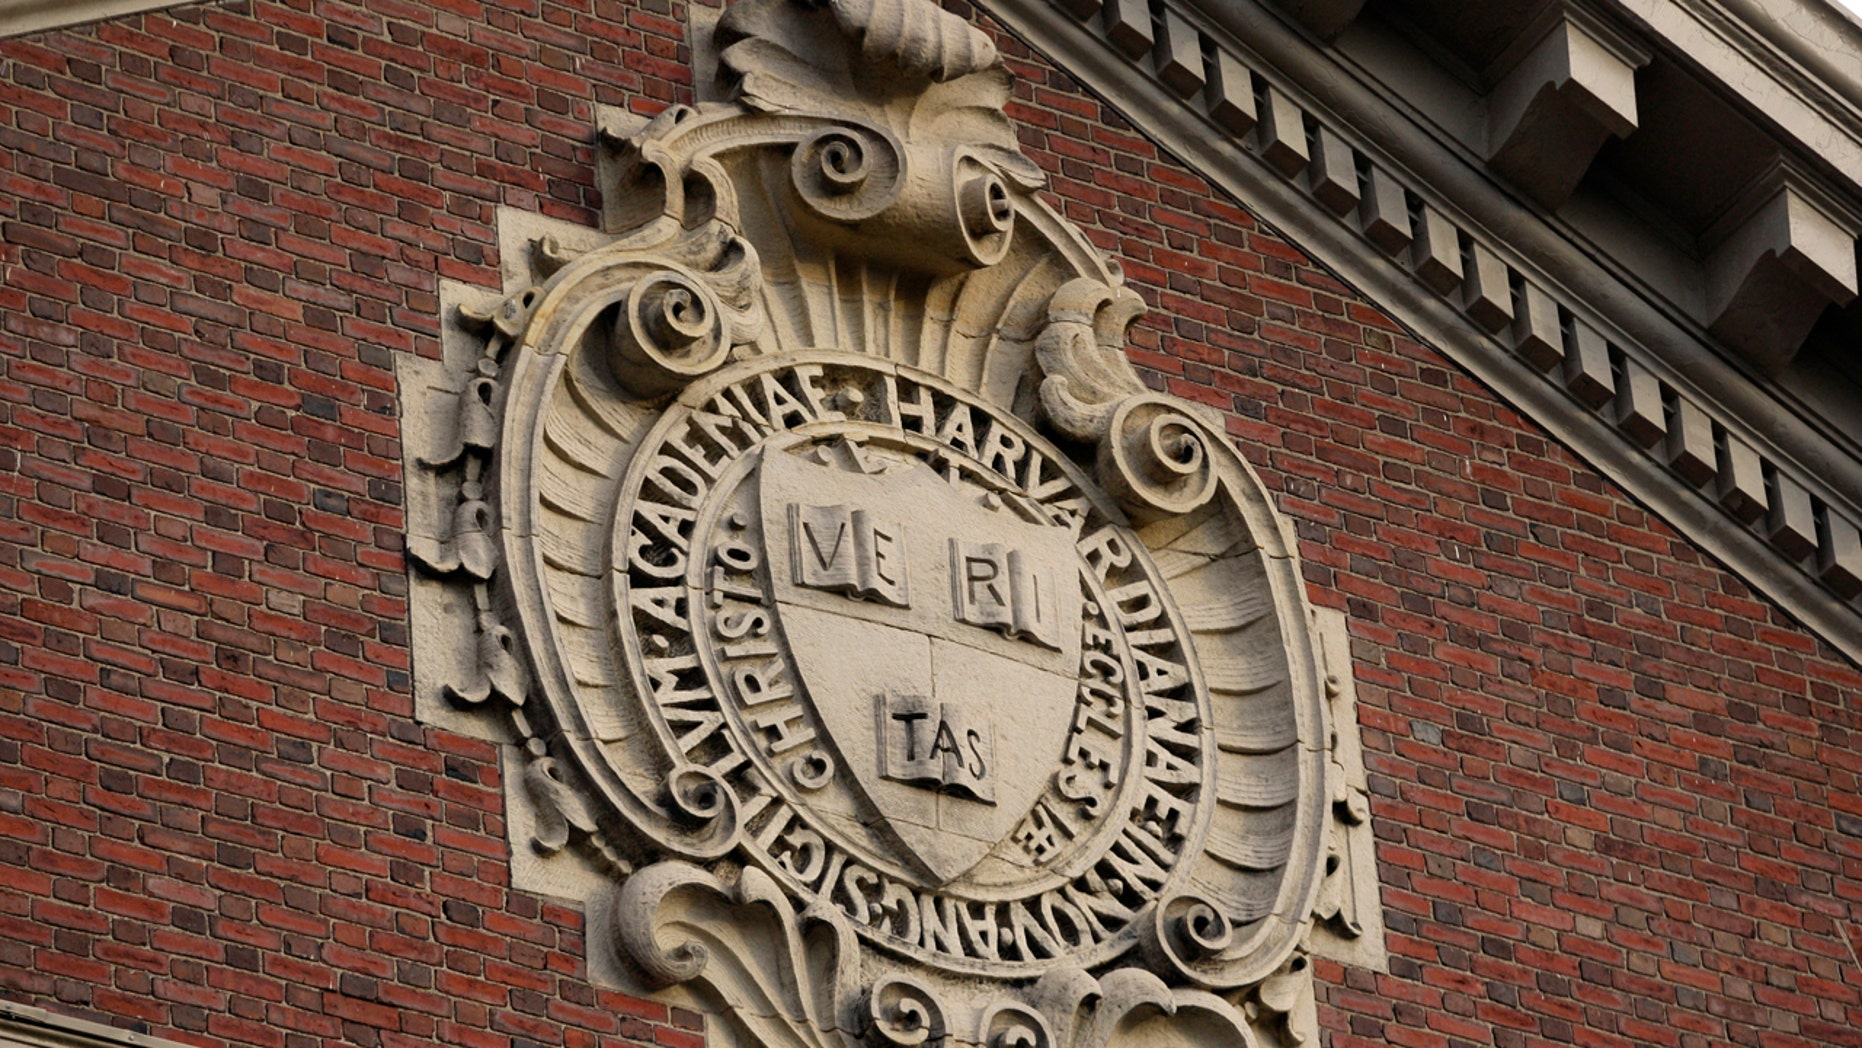 The university seal hangs over a building at Harvard University in Cambridge, Massachusetts, Nov. 16, 2012.